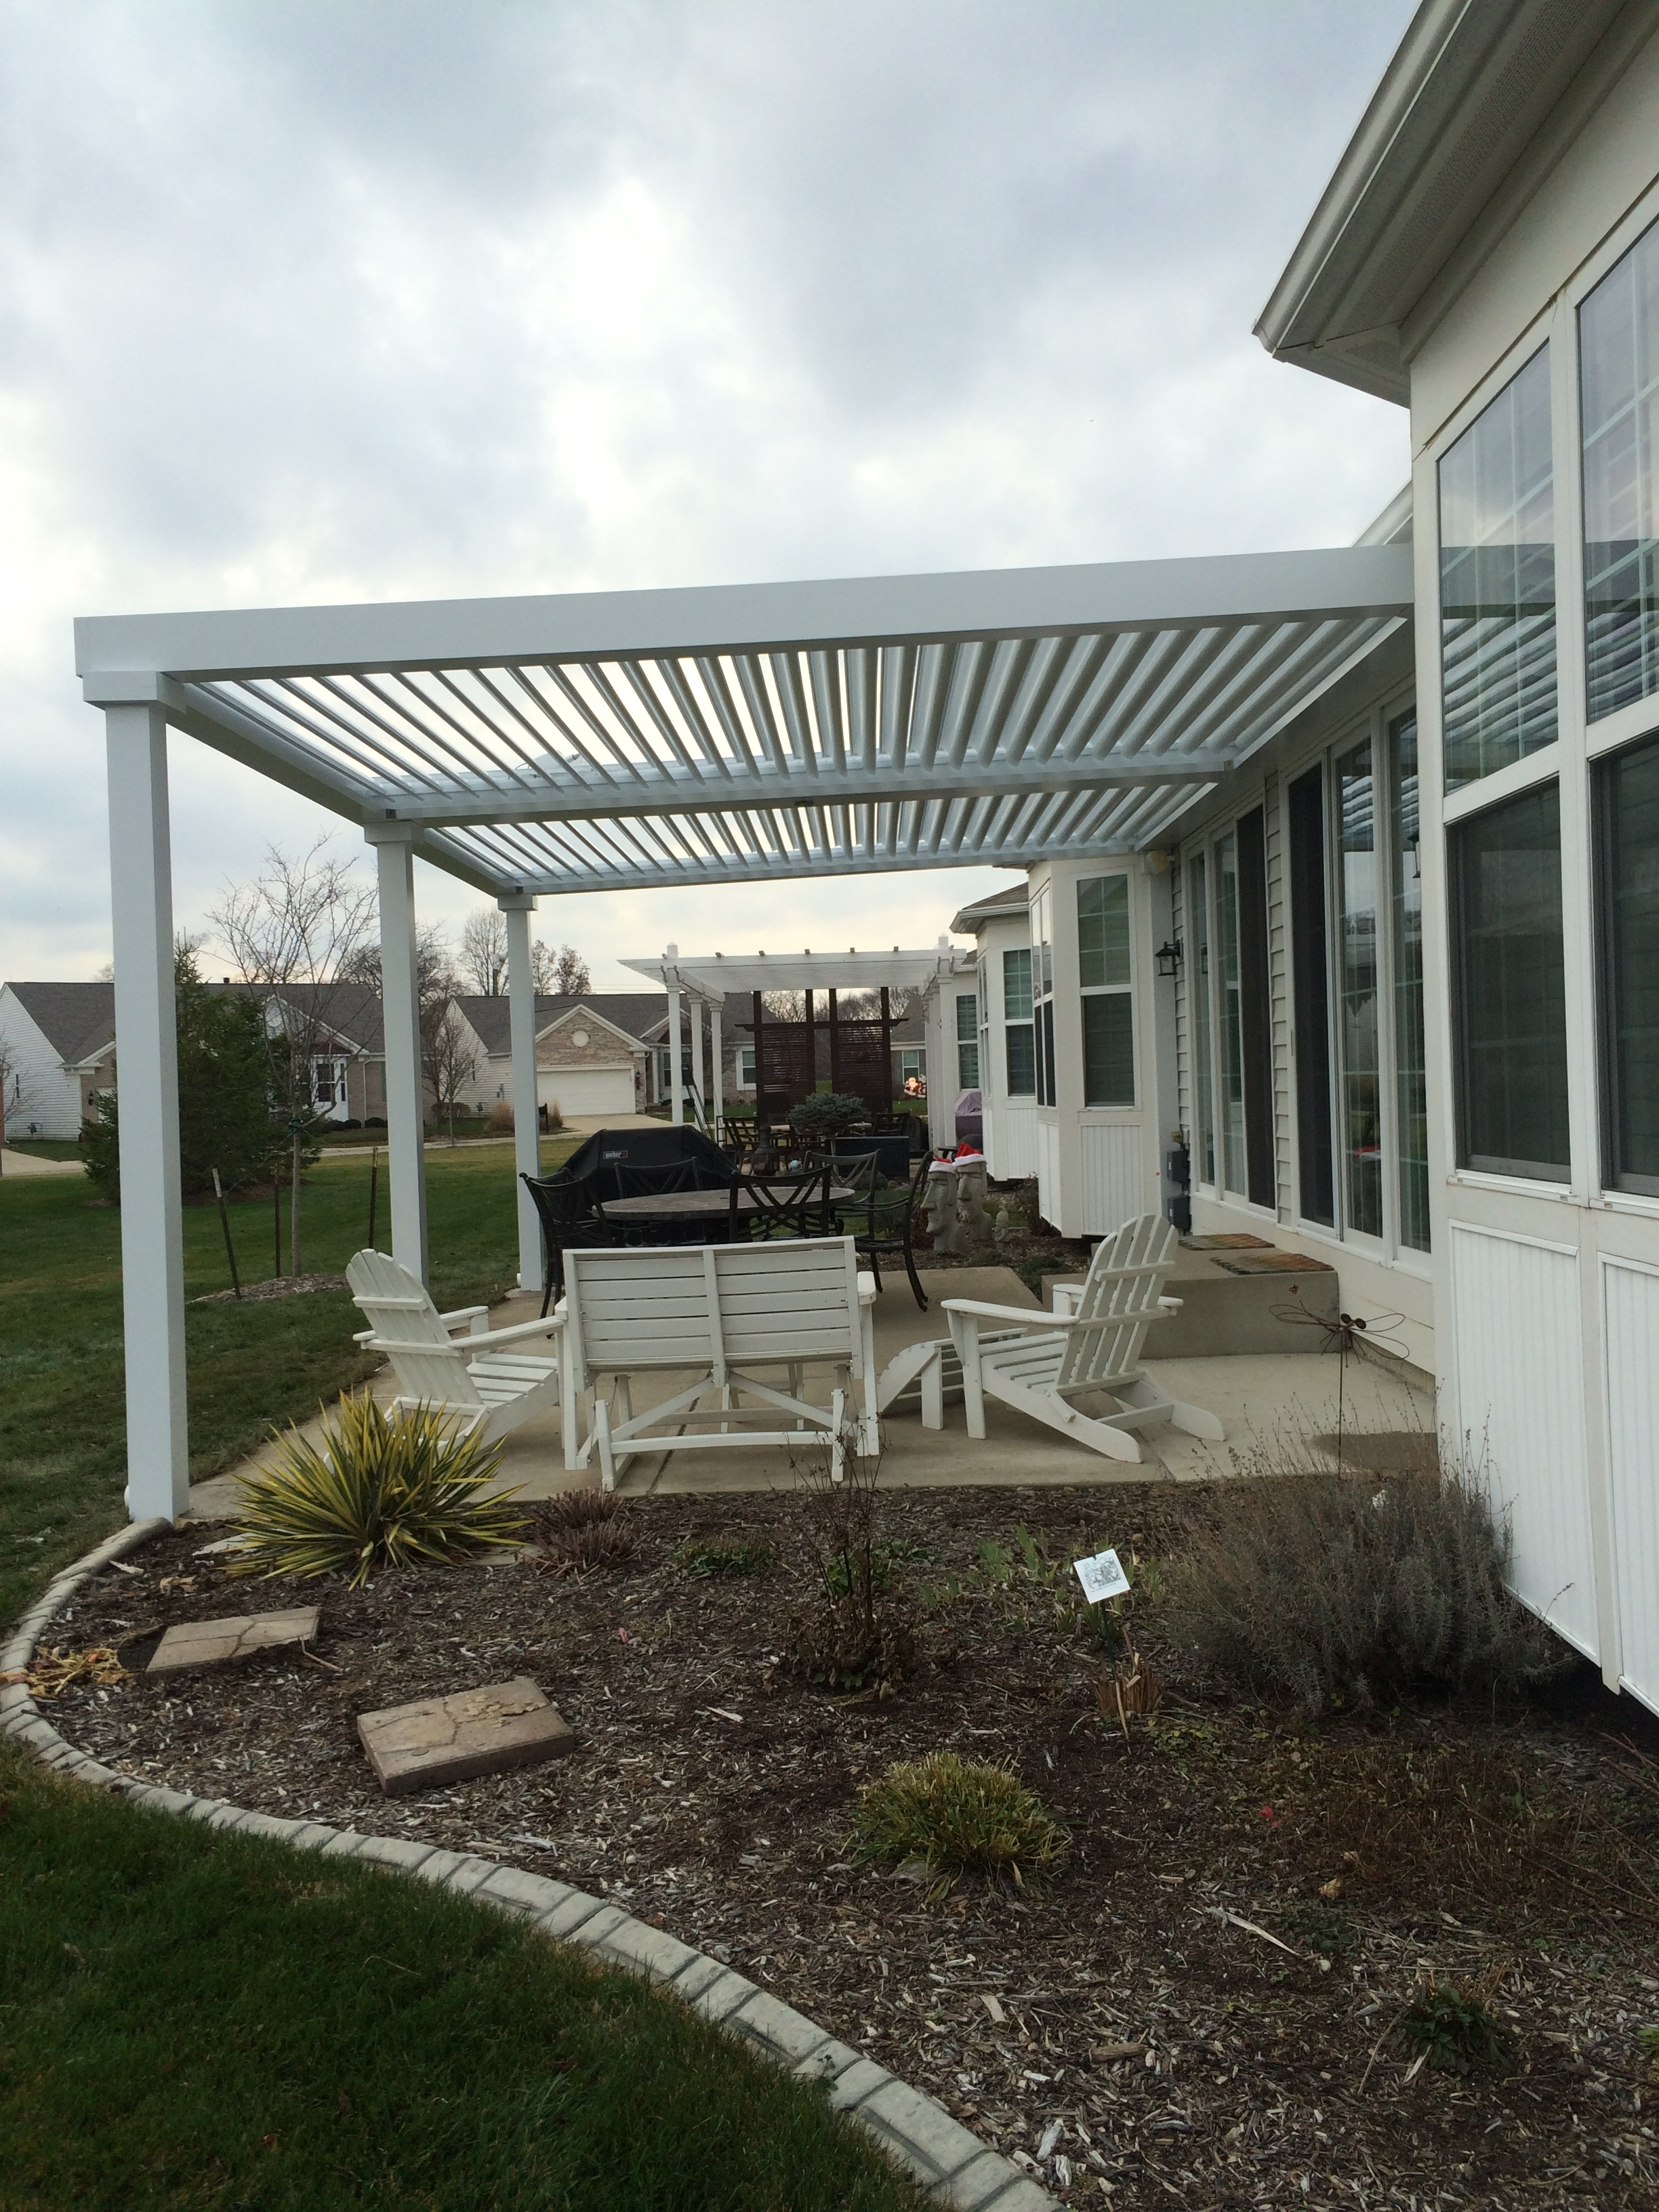 Fishers, IN - Patio cover - Free standing